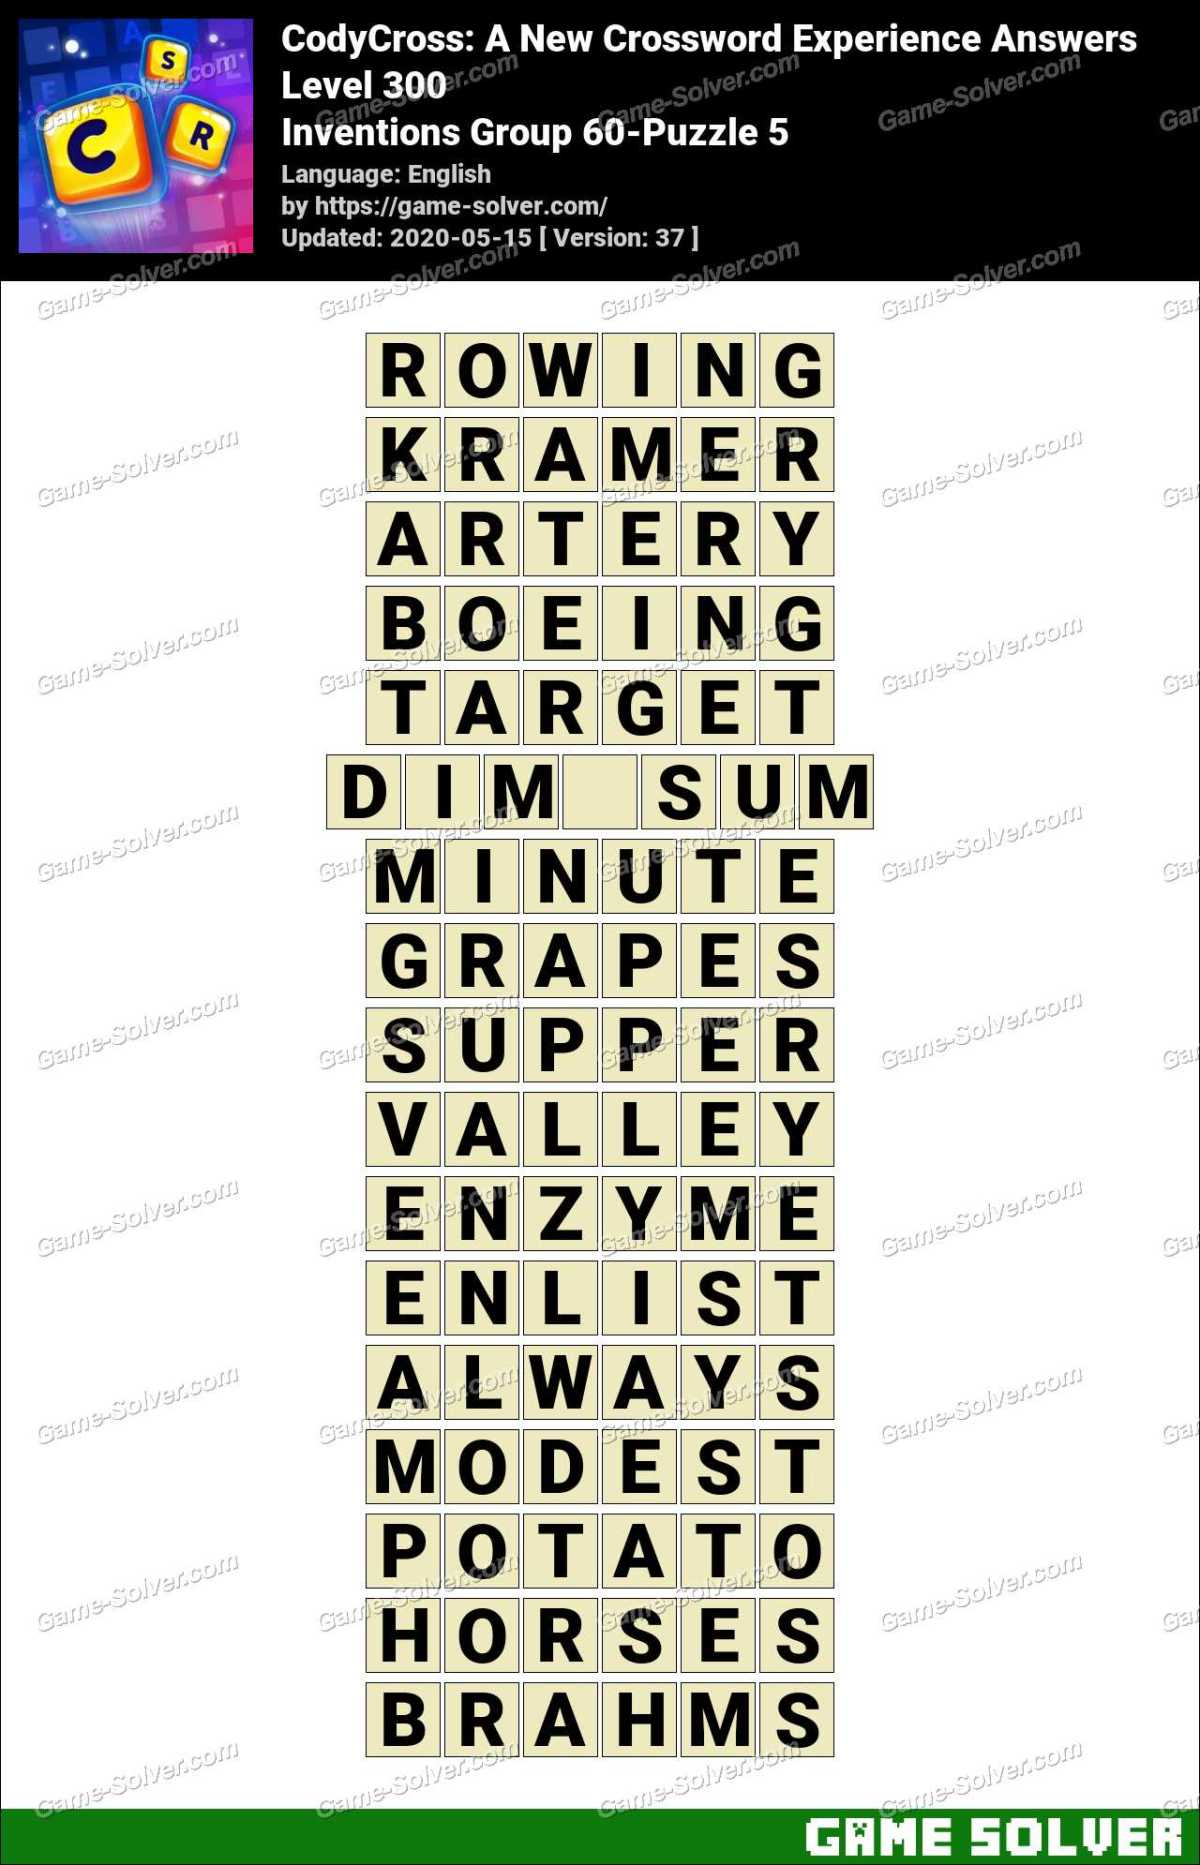 CodyCross Inventions Group 60-Puzzle 5 Answers